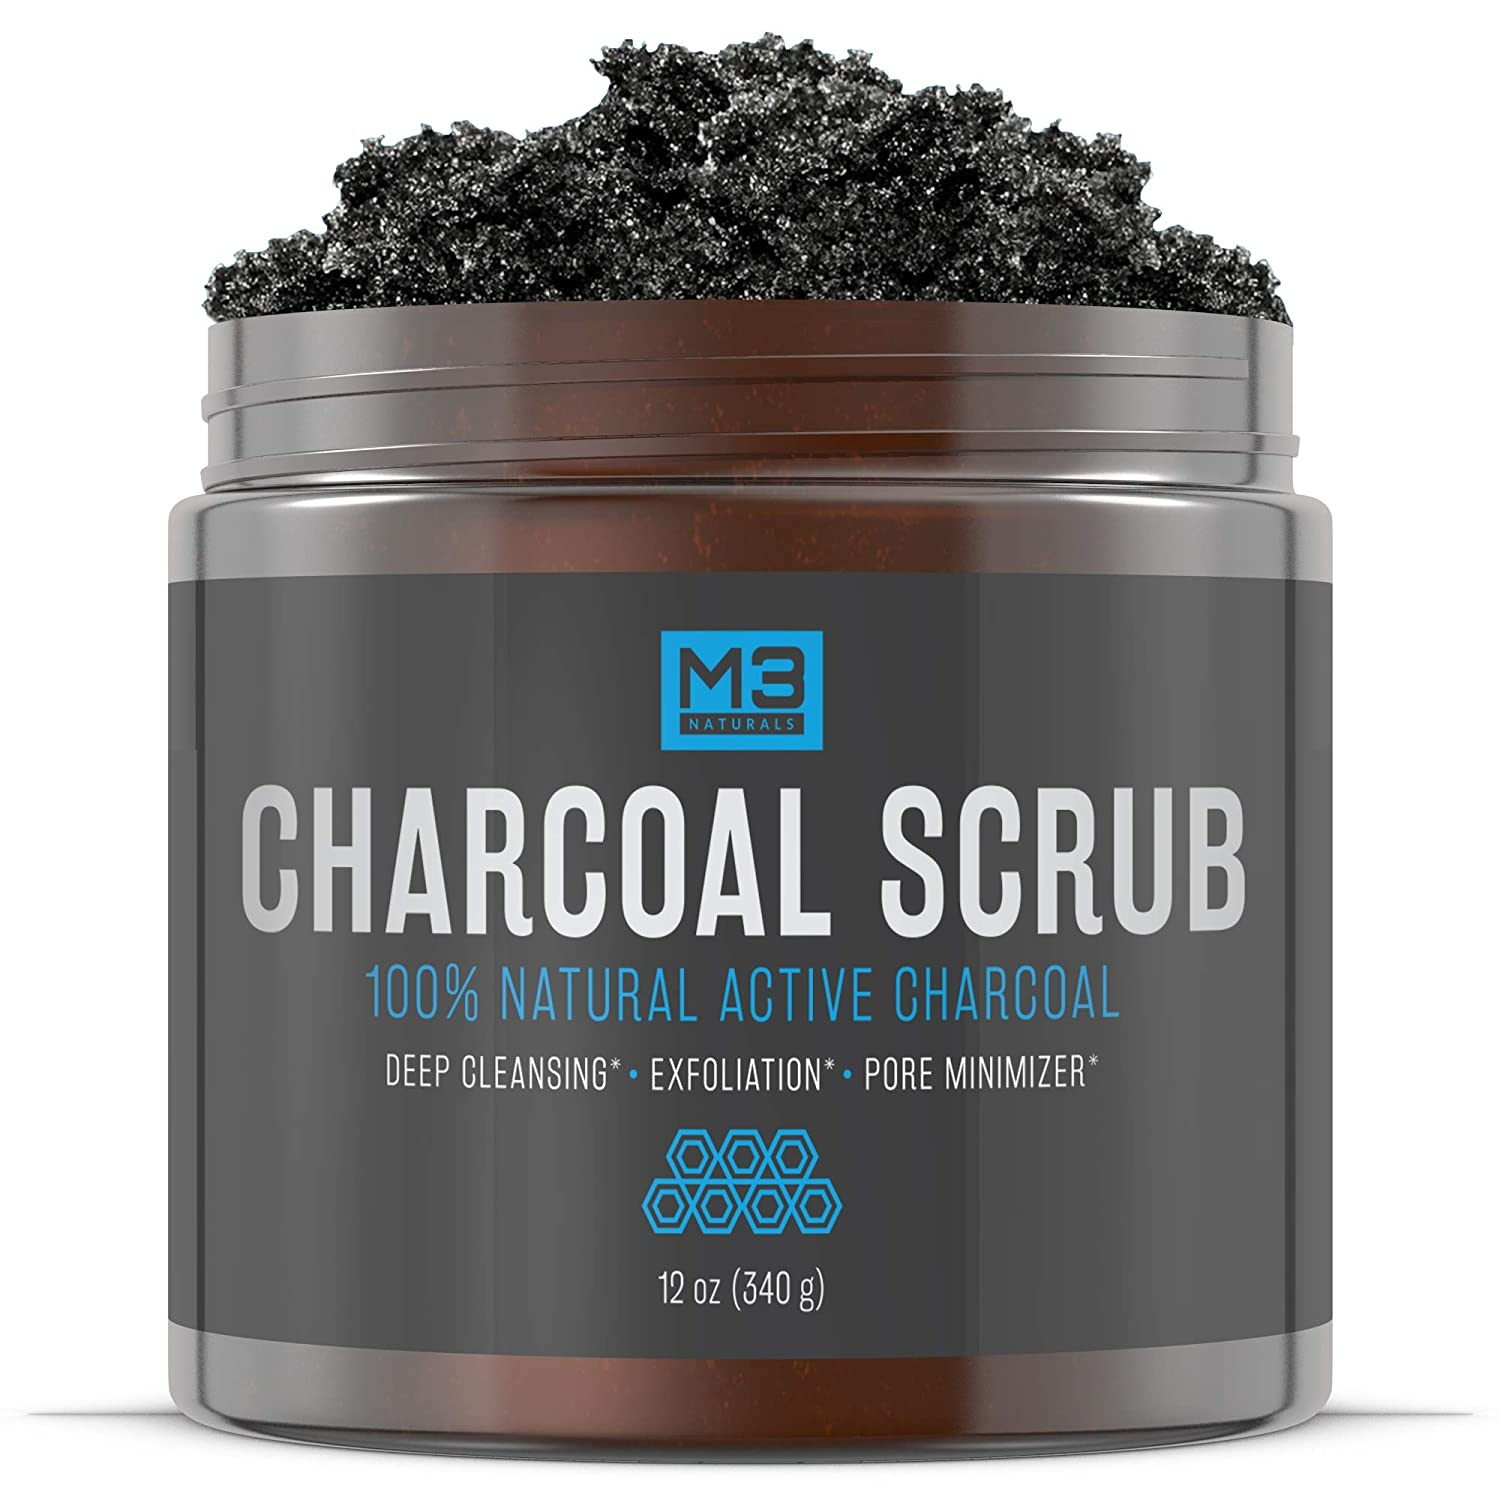 Premium Activated Charcoal Scrub 12 OZ - All Natural Pore Minimizer - Reduces Wrinkles, Blackheads & Acne Scars, Anti Cellulite Treatment - Body & Face Cleanser - Face Scrub & Body Scrub M3 Naturals